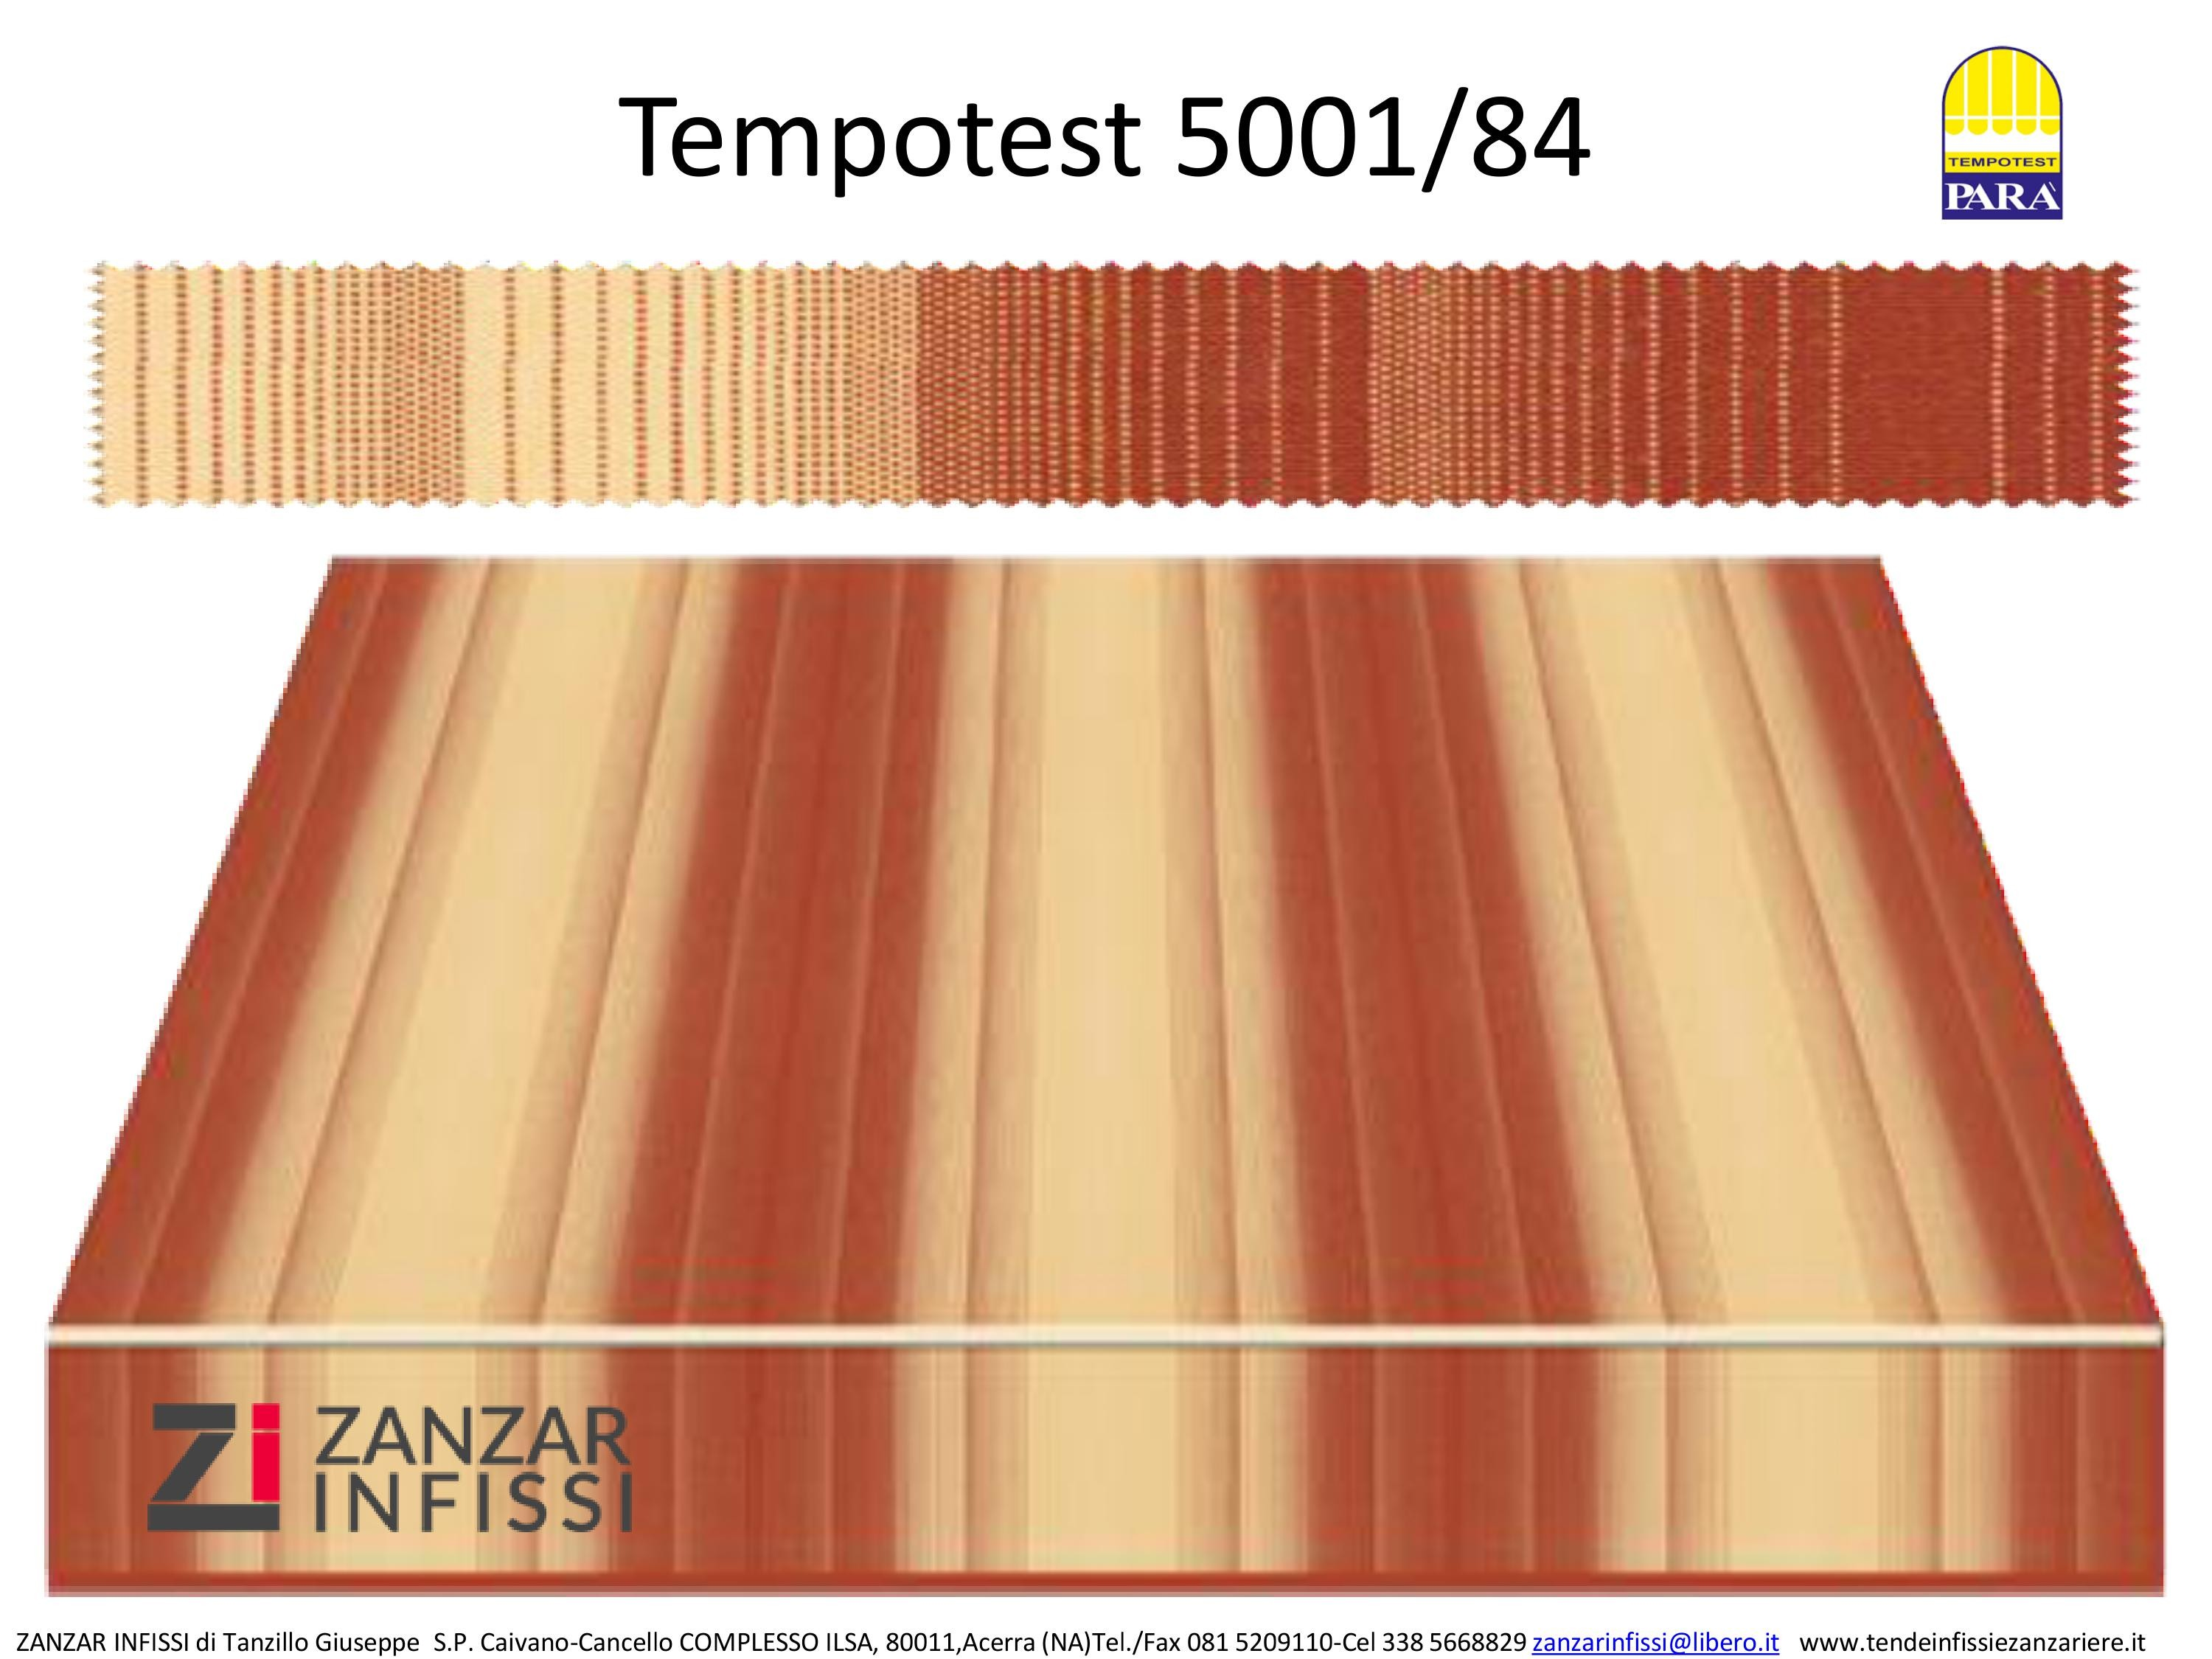 Tempotest 5001/84